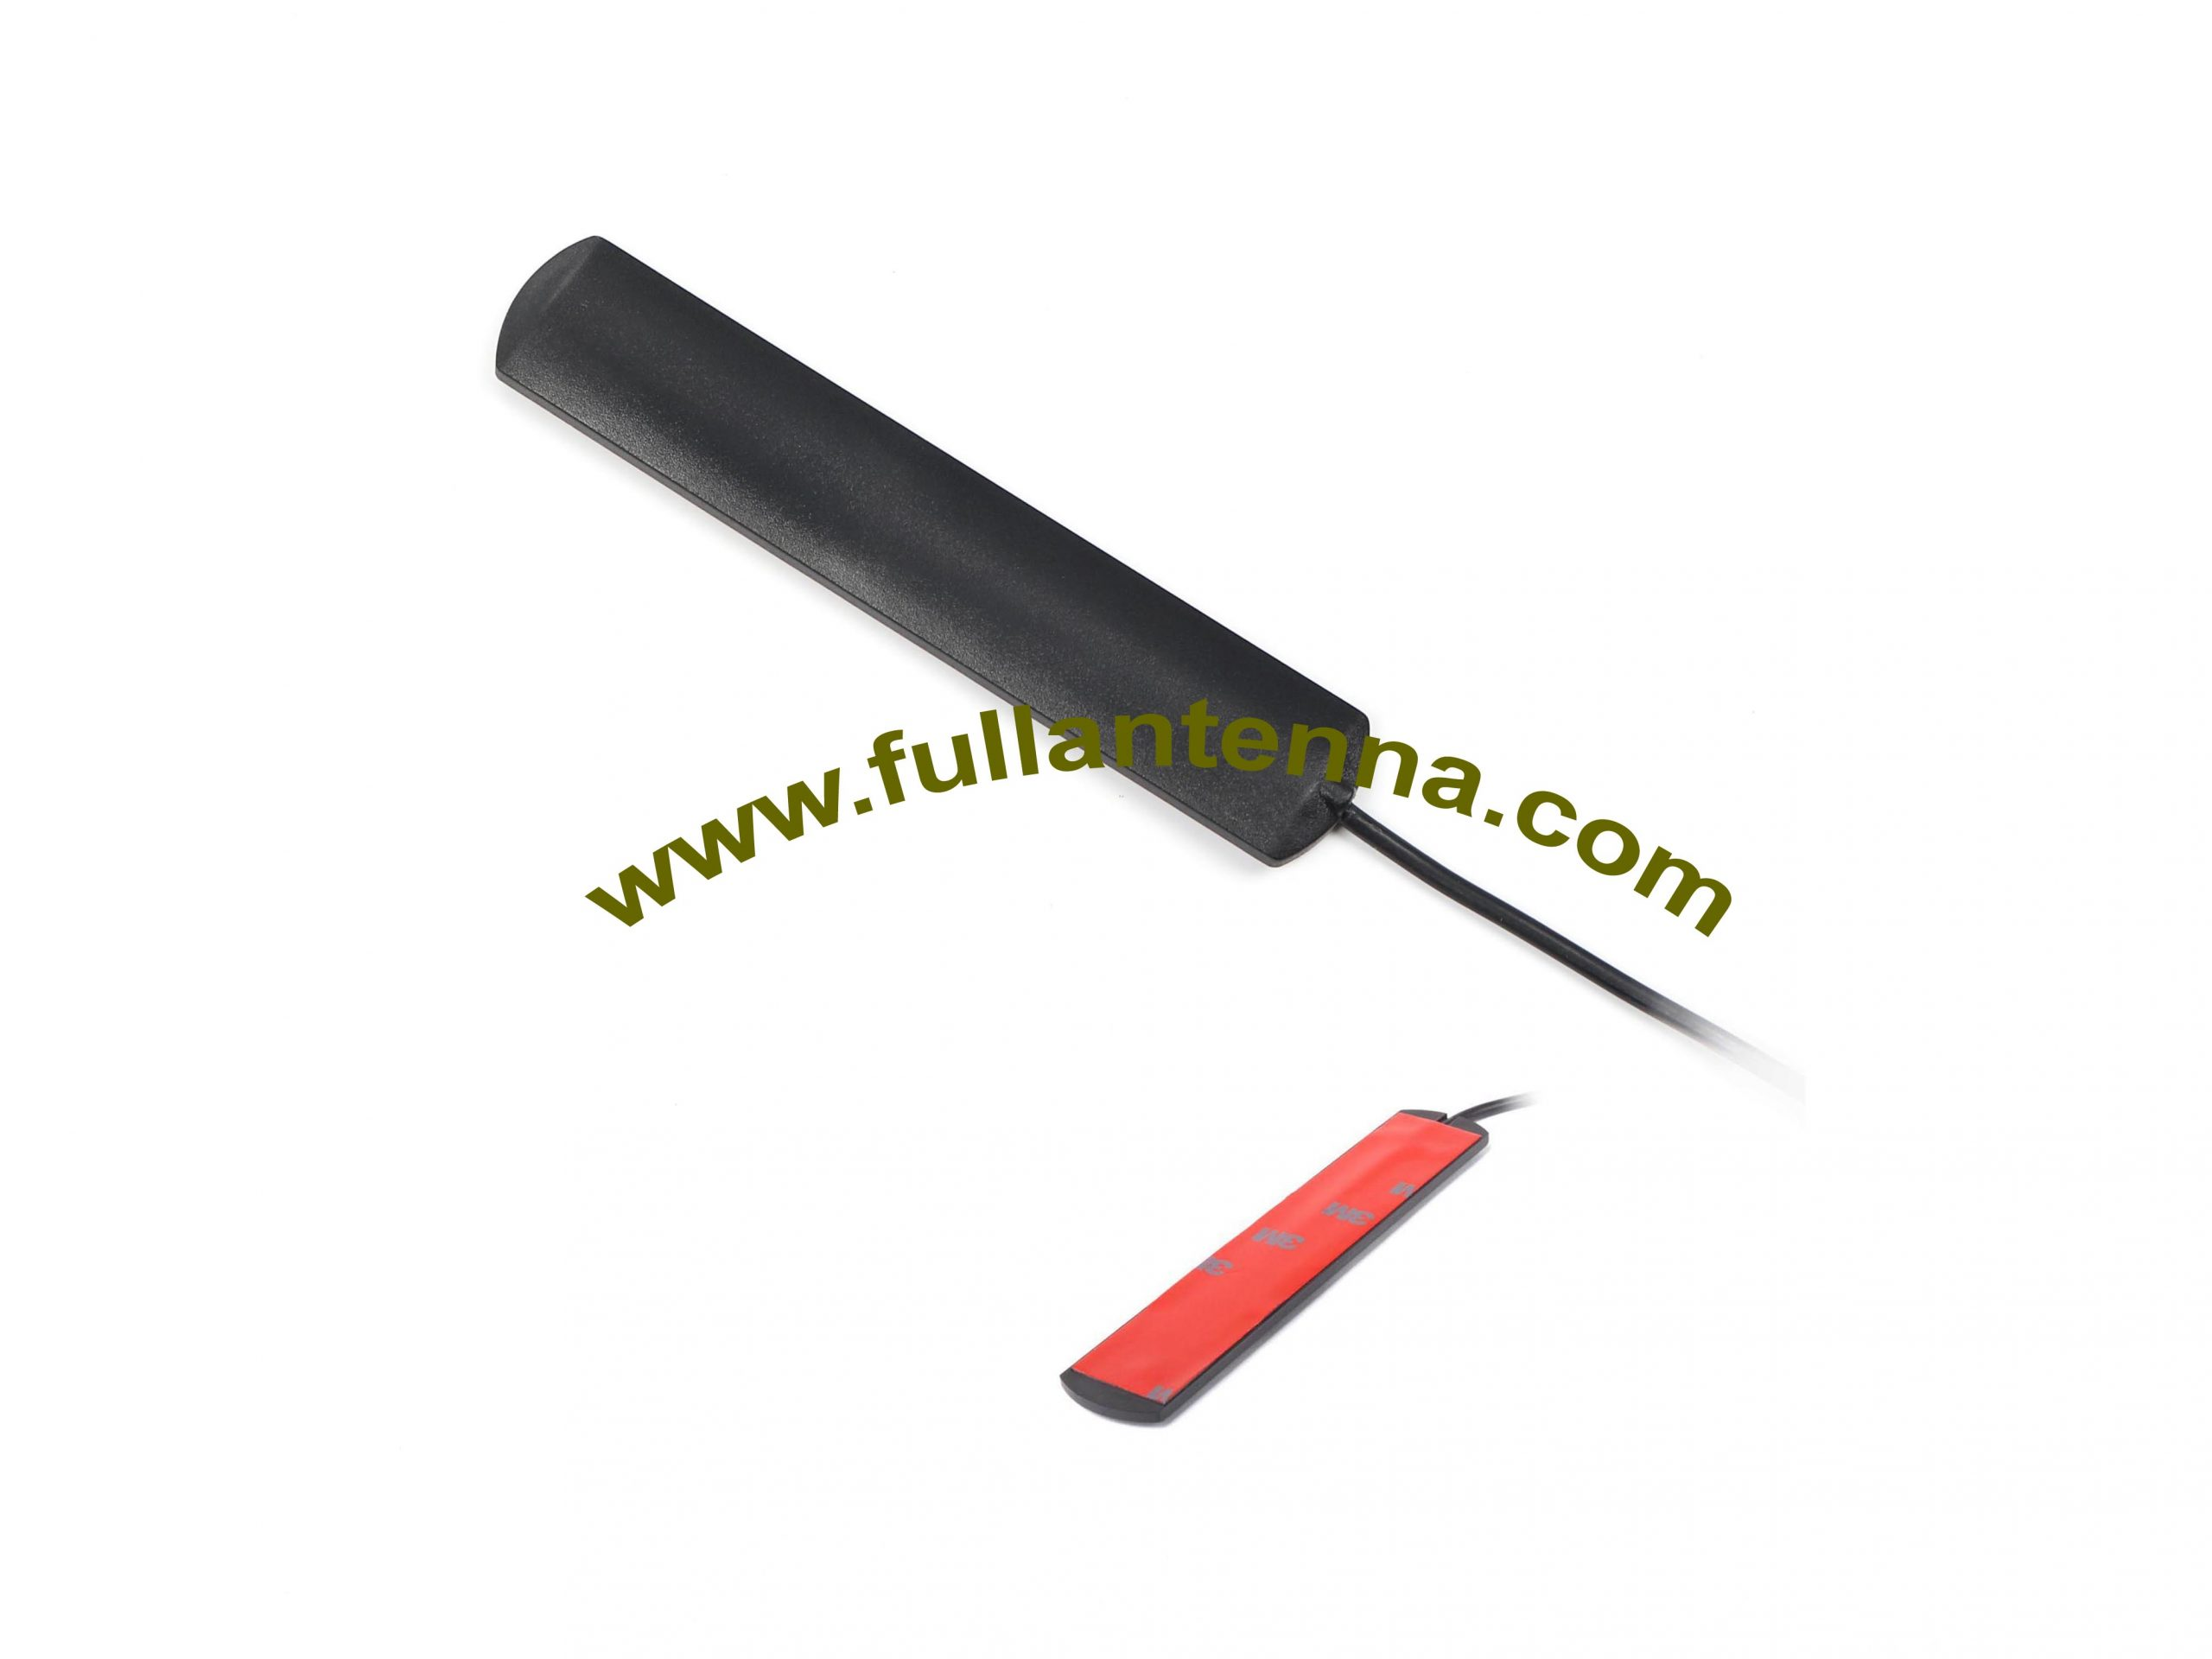 P/N:FA433.05,433Mhz Antenna, 433mhz patch antenna with adhesive mount